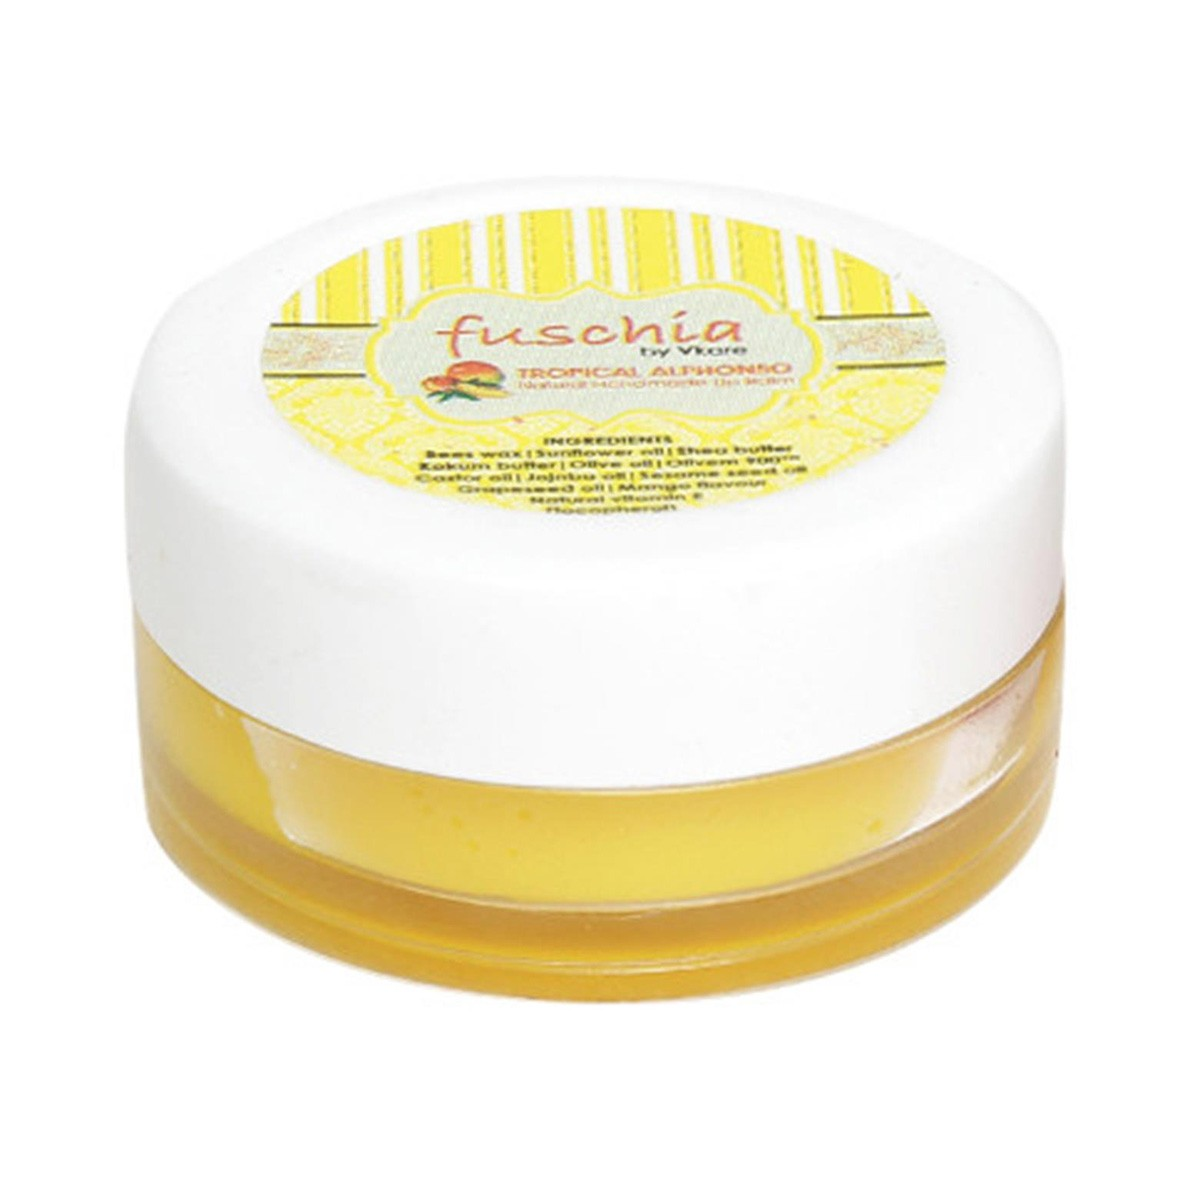 Tropical Alphonso Lip Balm